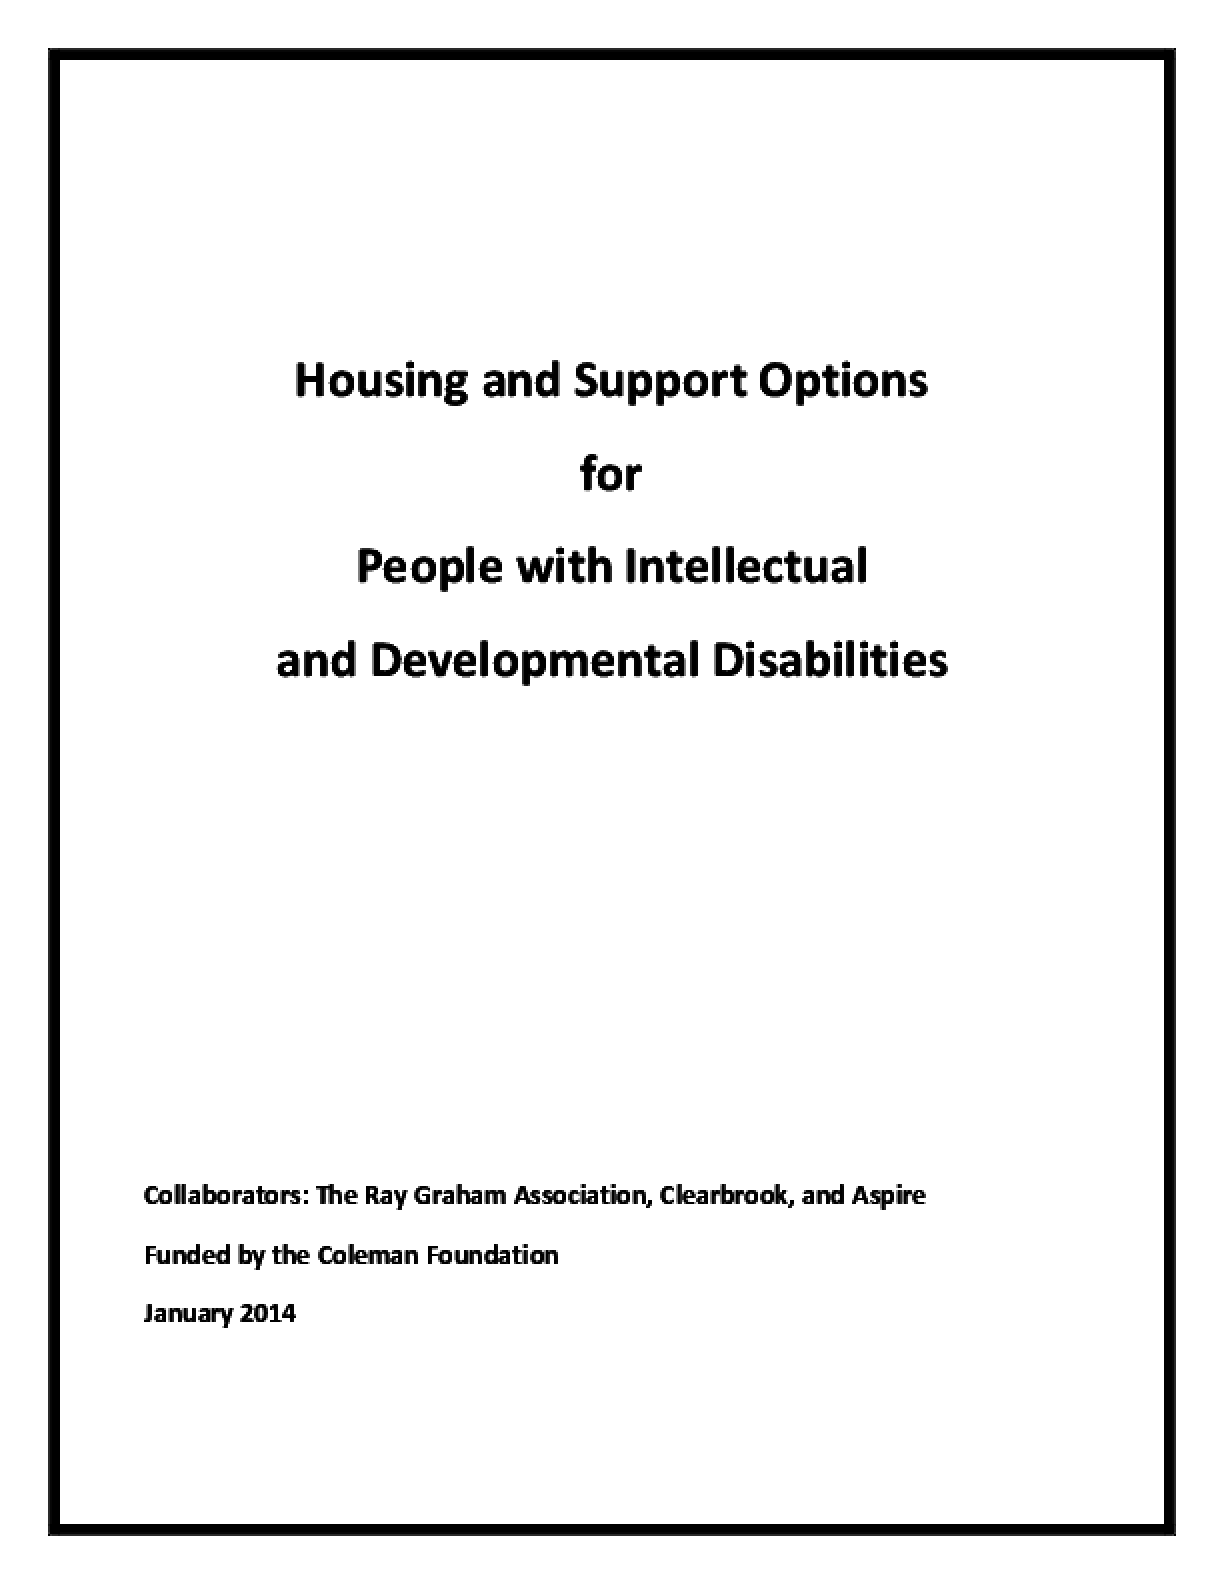 Housing and Support Options for People with Intellectual and Developmental Disabilities